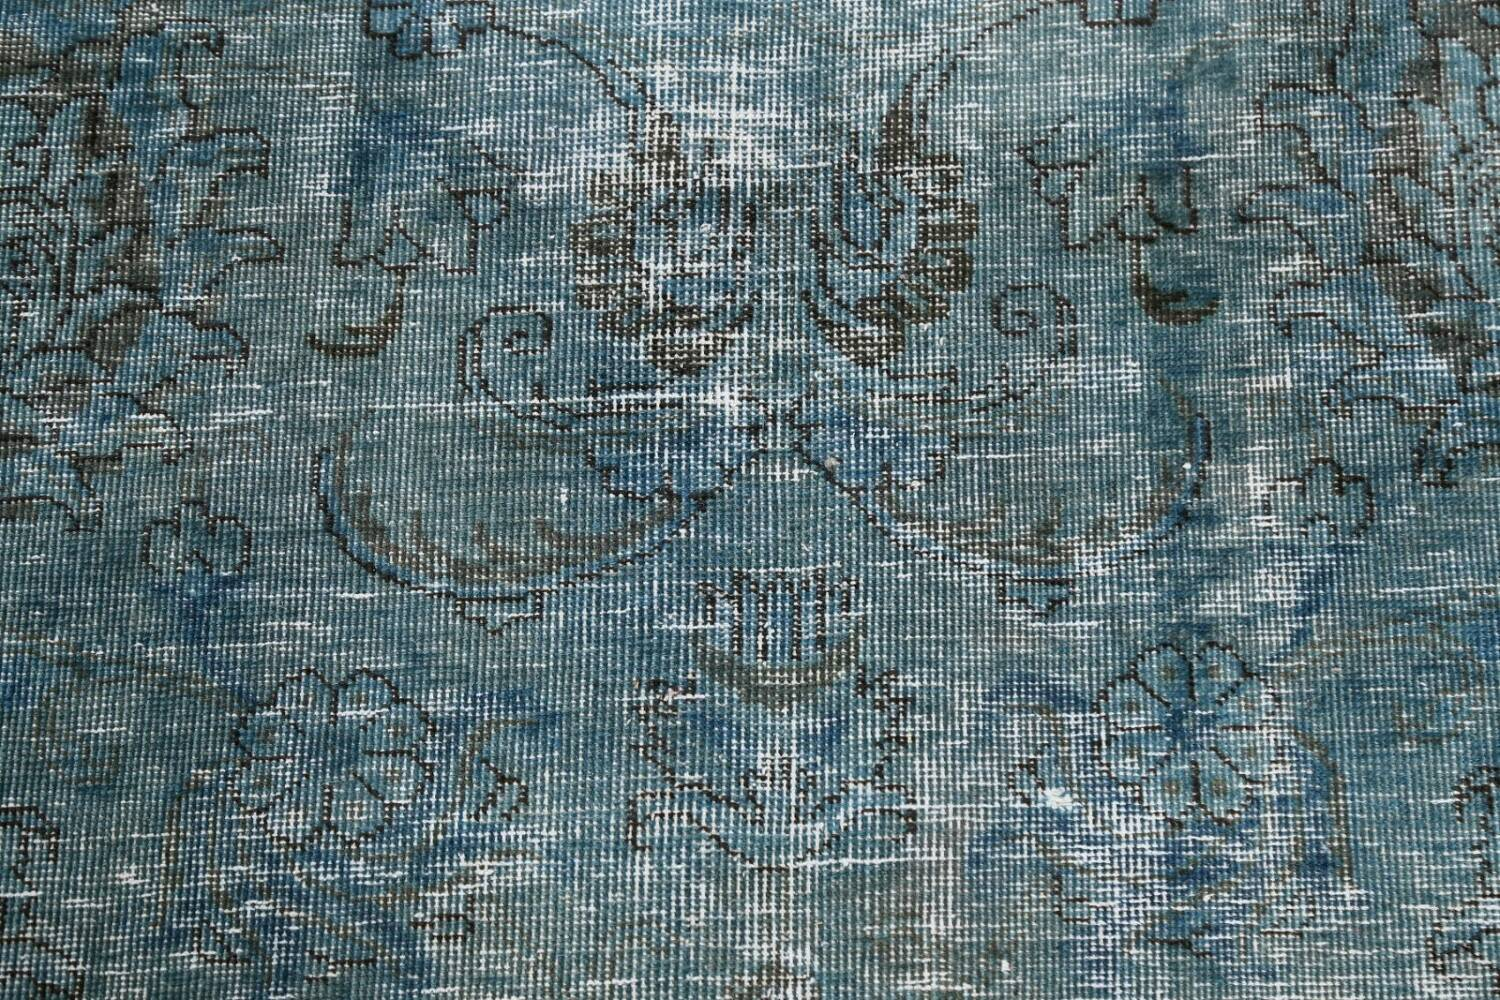 Distressed Over-dyed Tabriz Persian Area Rug 8x8 Square image 10